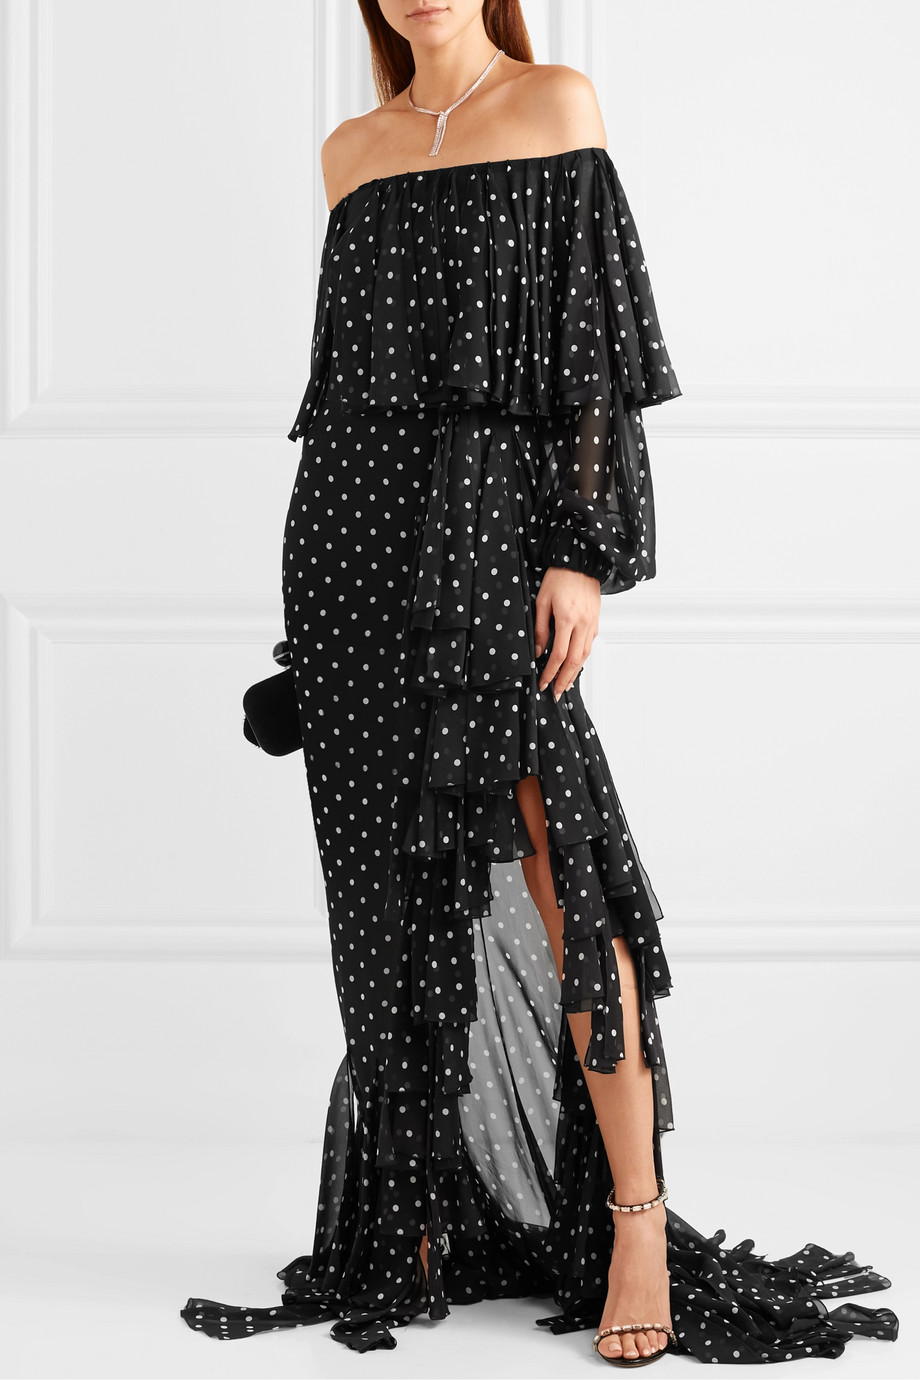 Balmain Off-the-shoulder ruffled polka-dot silk-chiffon maxi dress